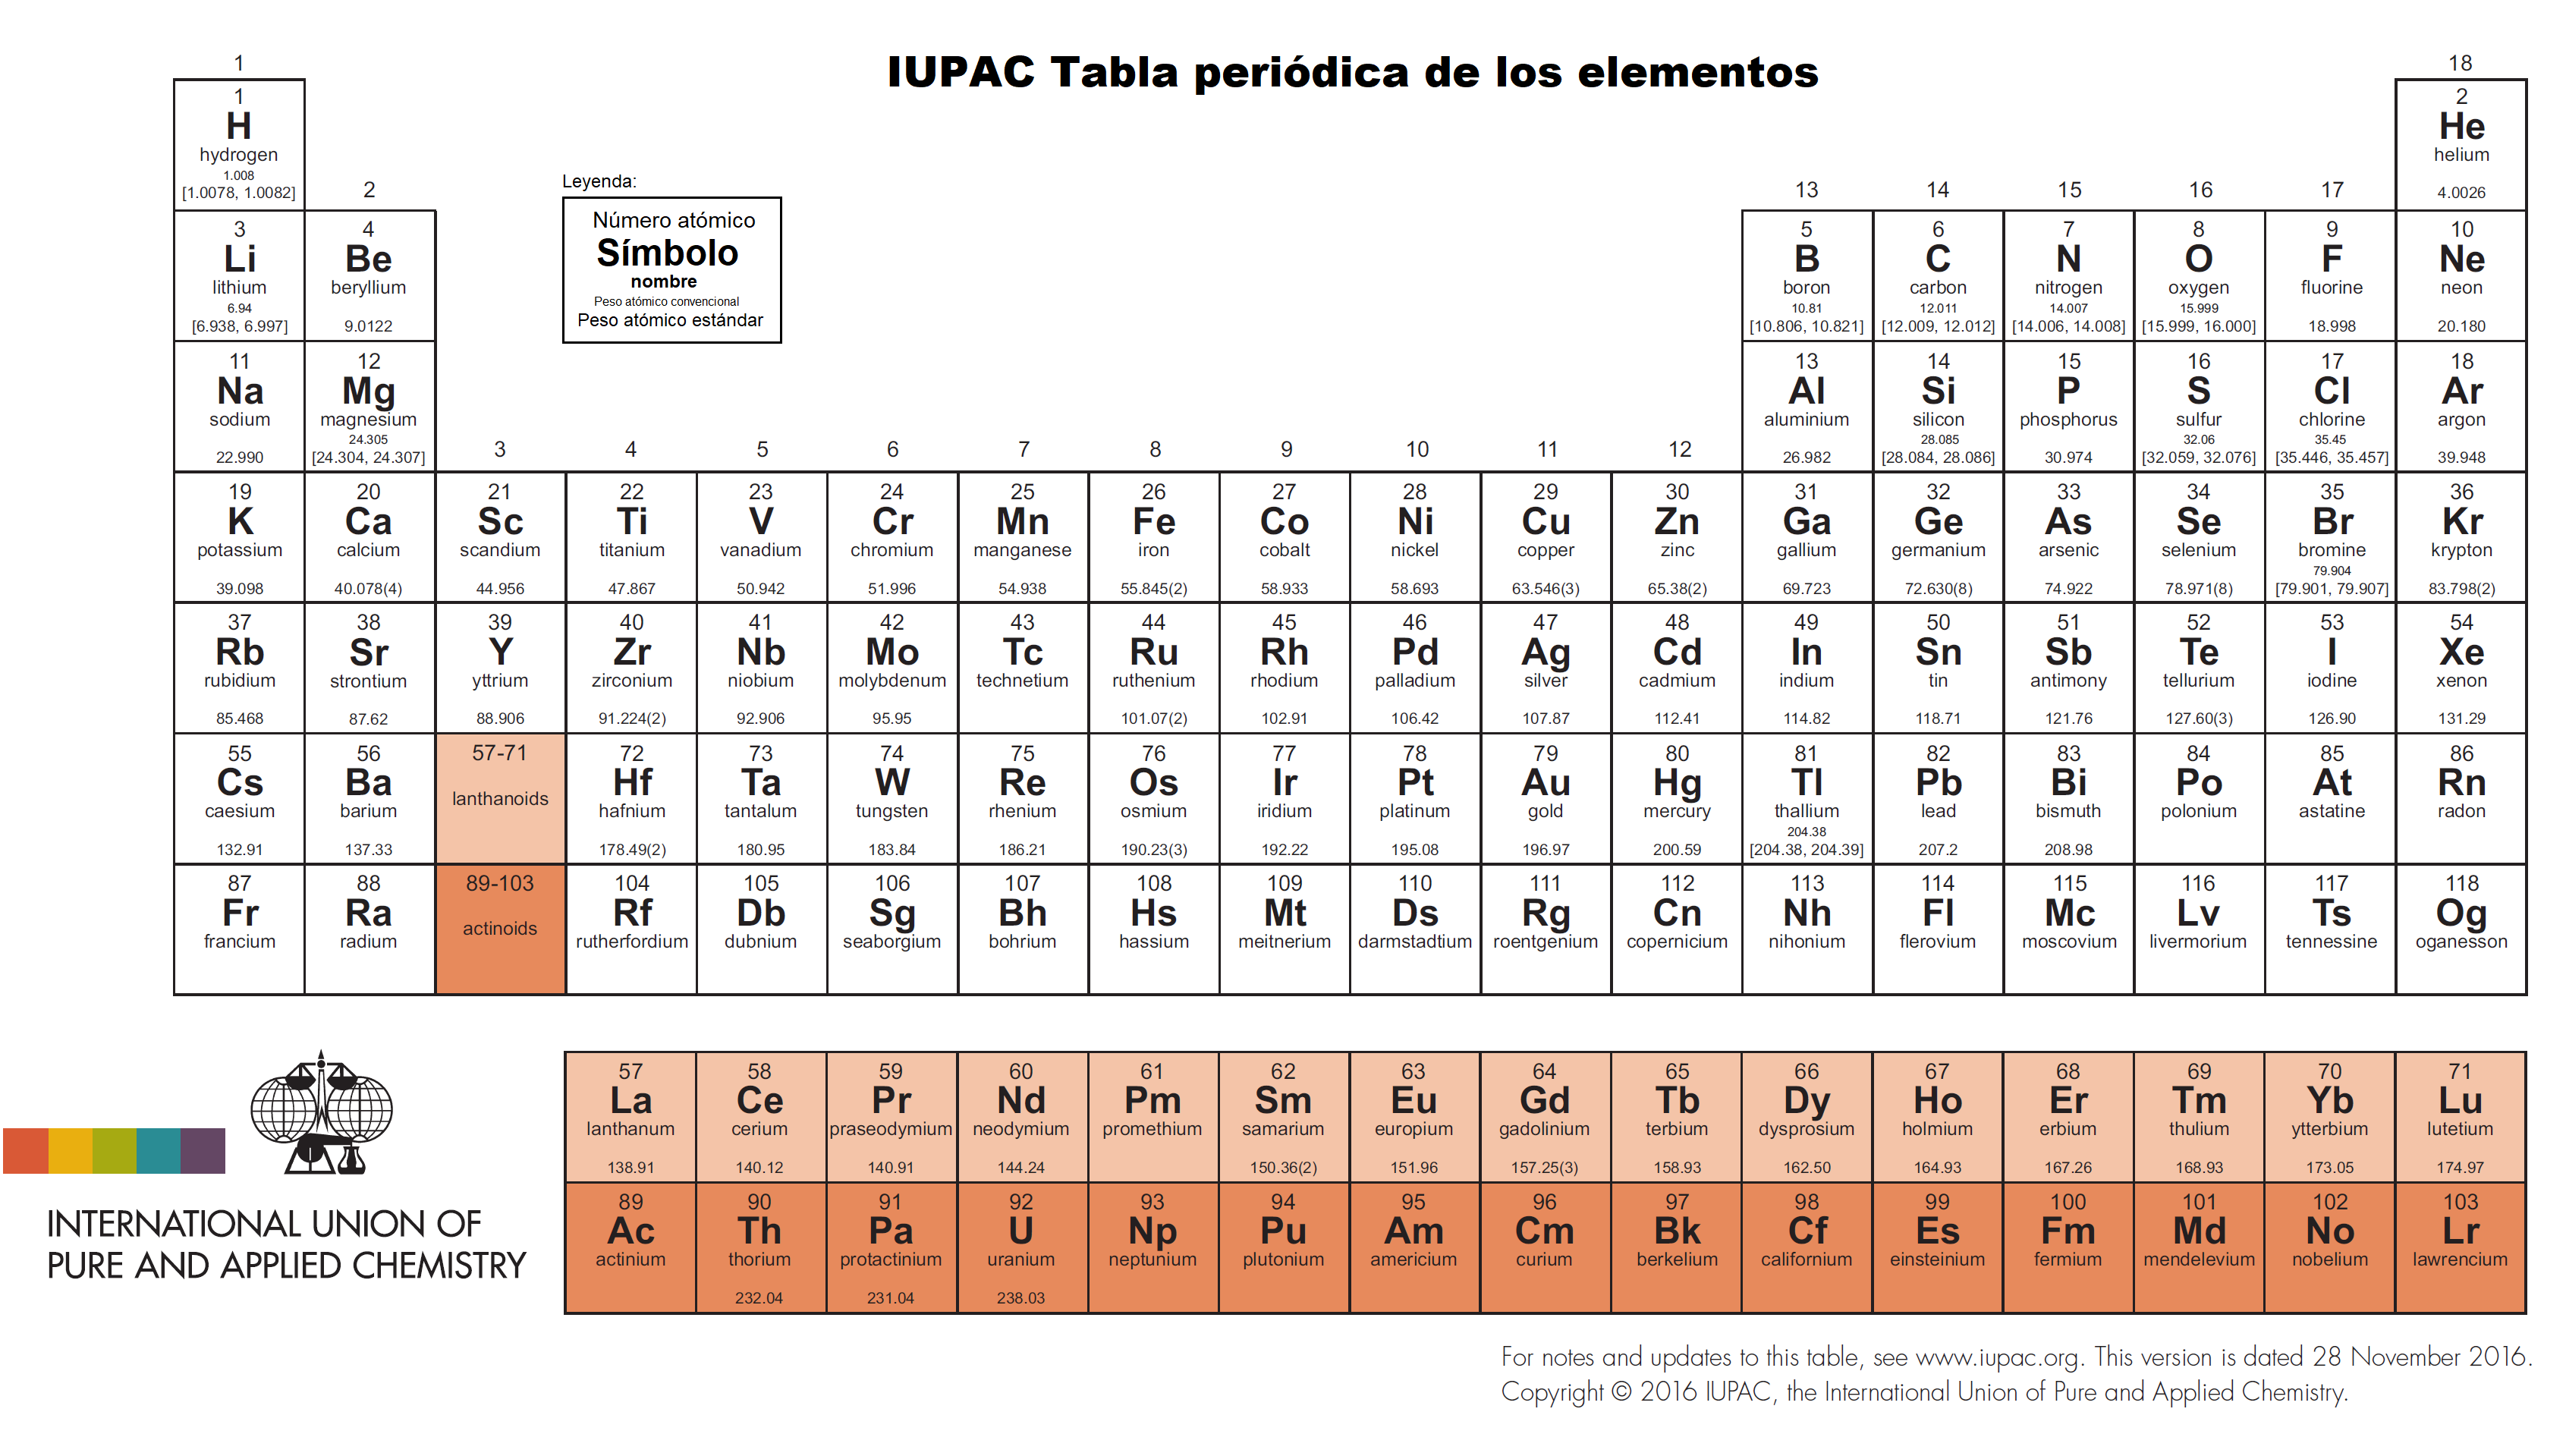 Jdomingo cbrn tabla peridica actual publicada por la iupac httpsiupacwhat we doperiodic table of elements urtaz Image collections